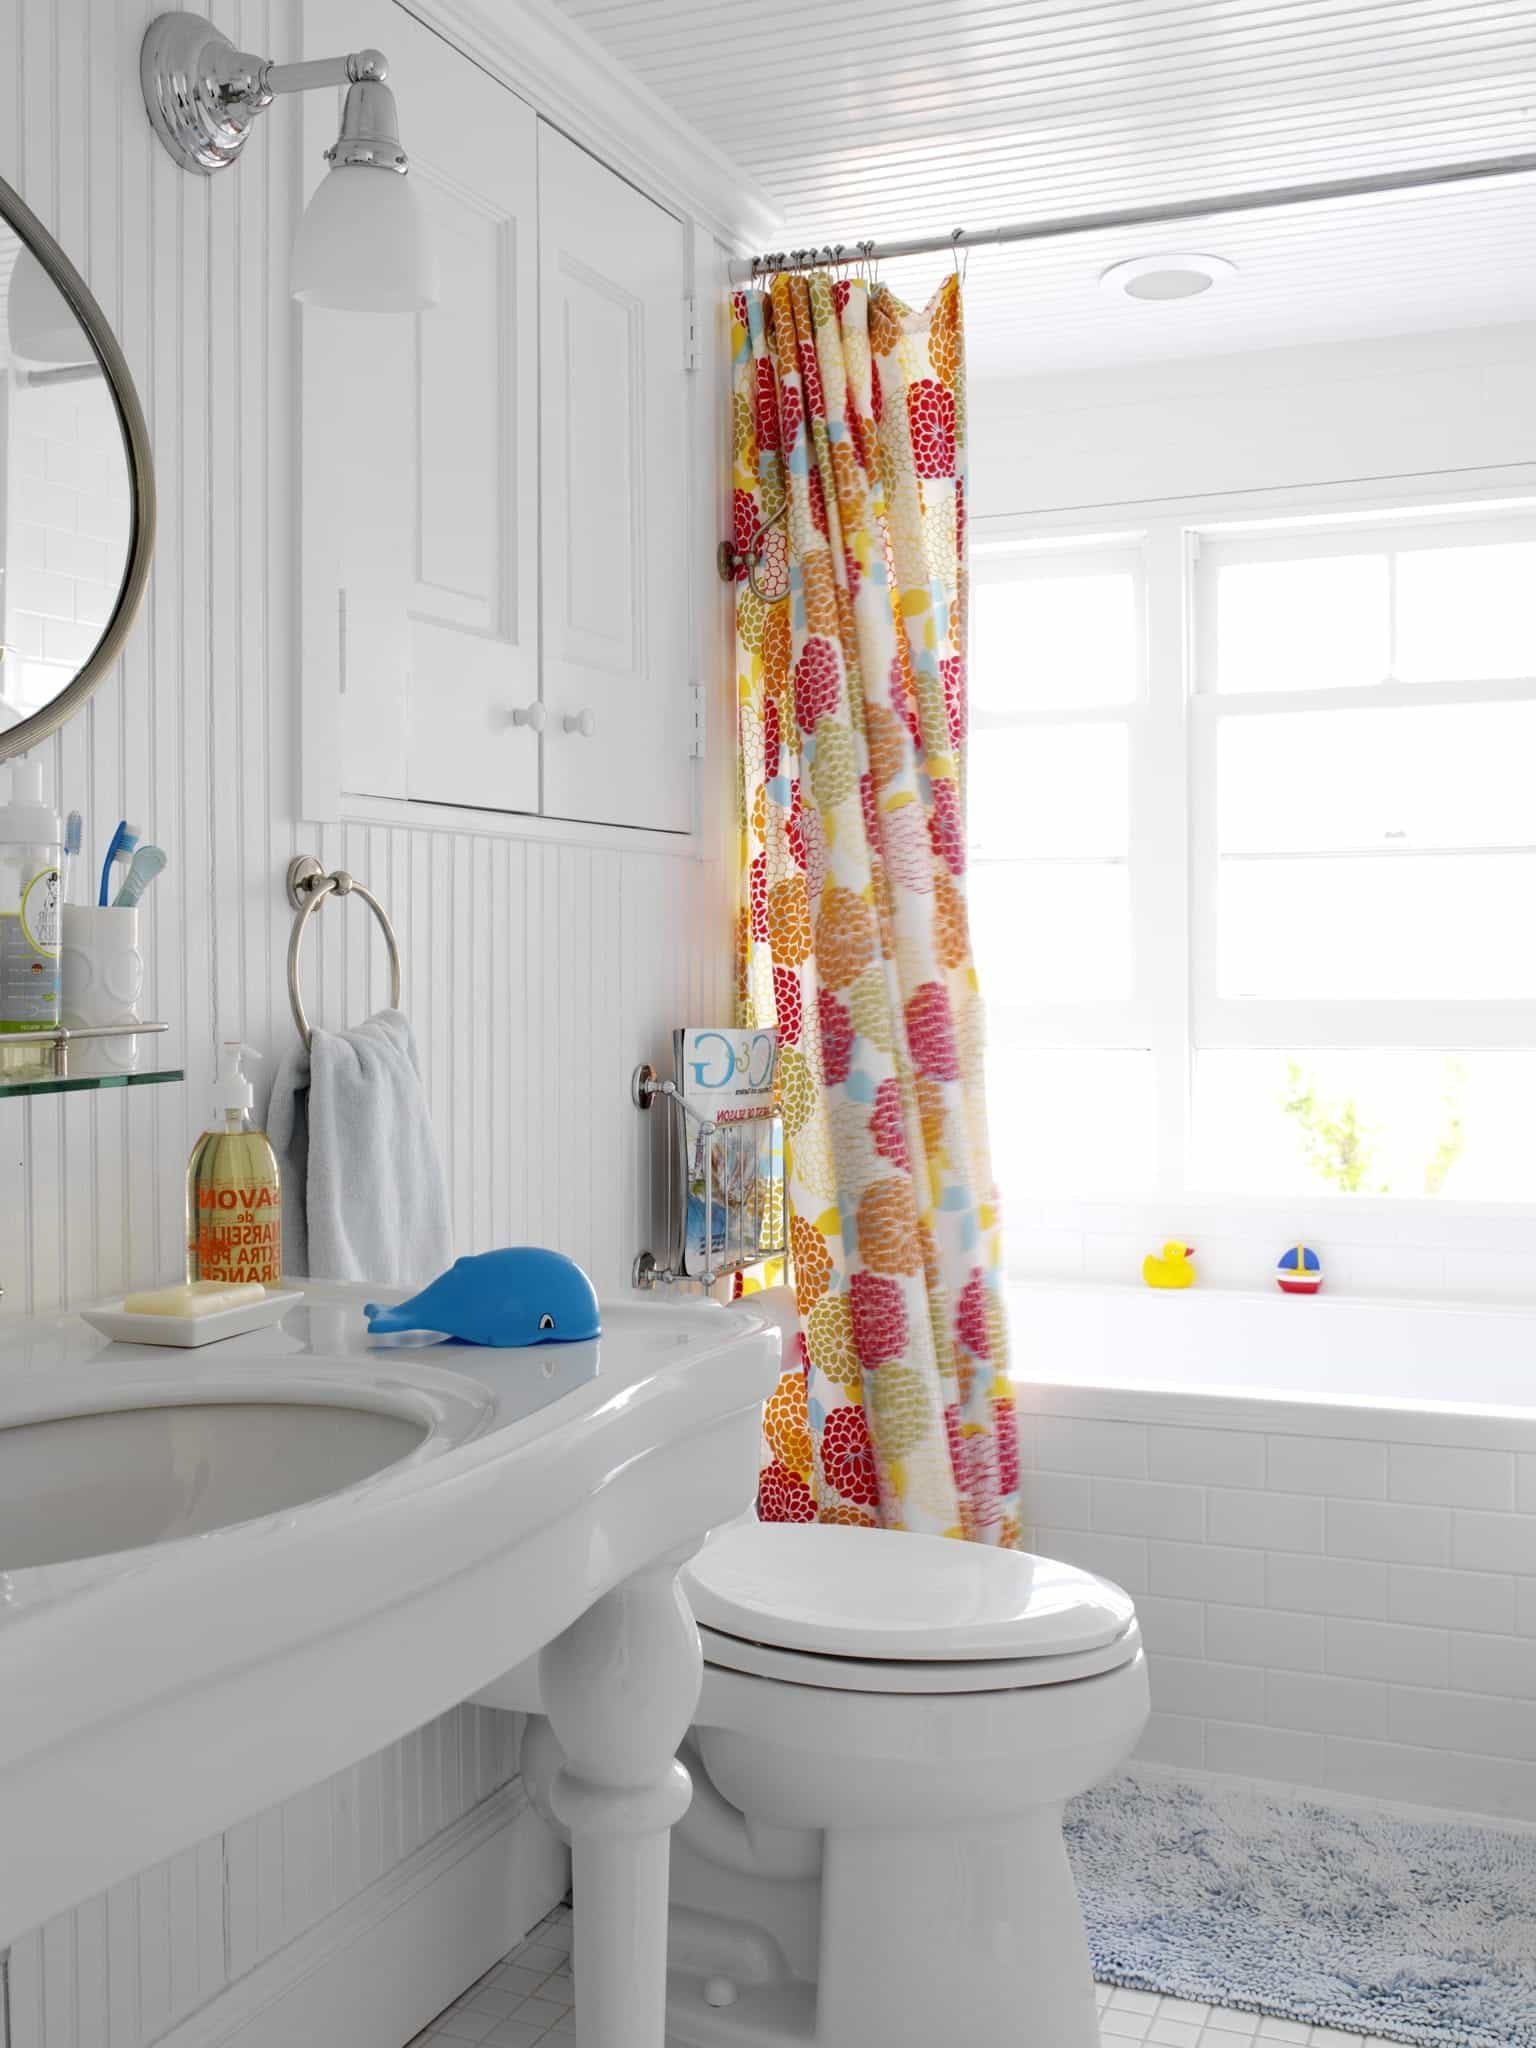 Crisp White Bathroom With Colorful Shower Curtain (View 9 of 14)